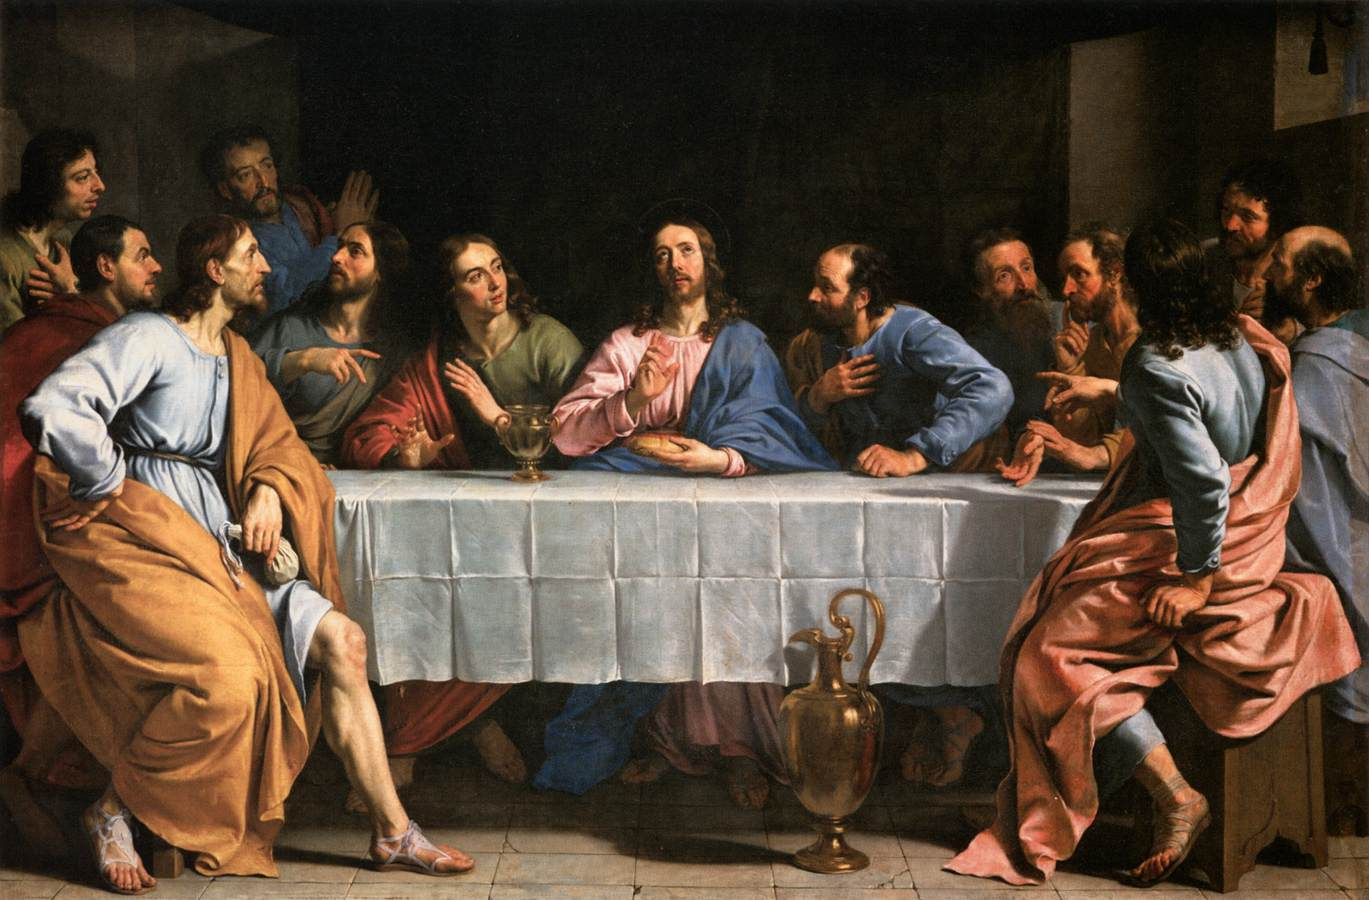 Lessons From the Last Supper?